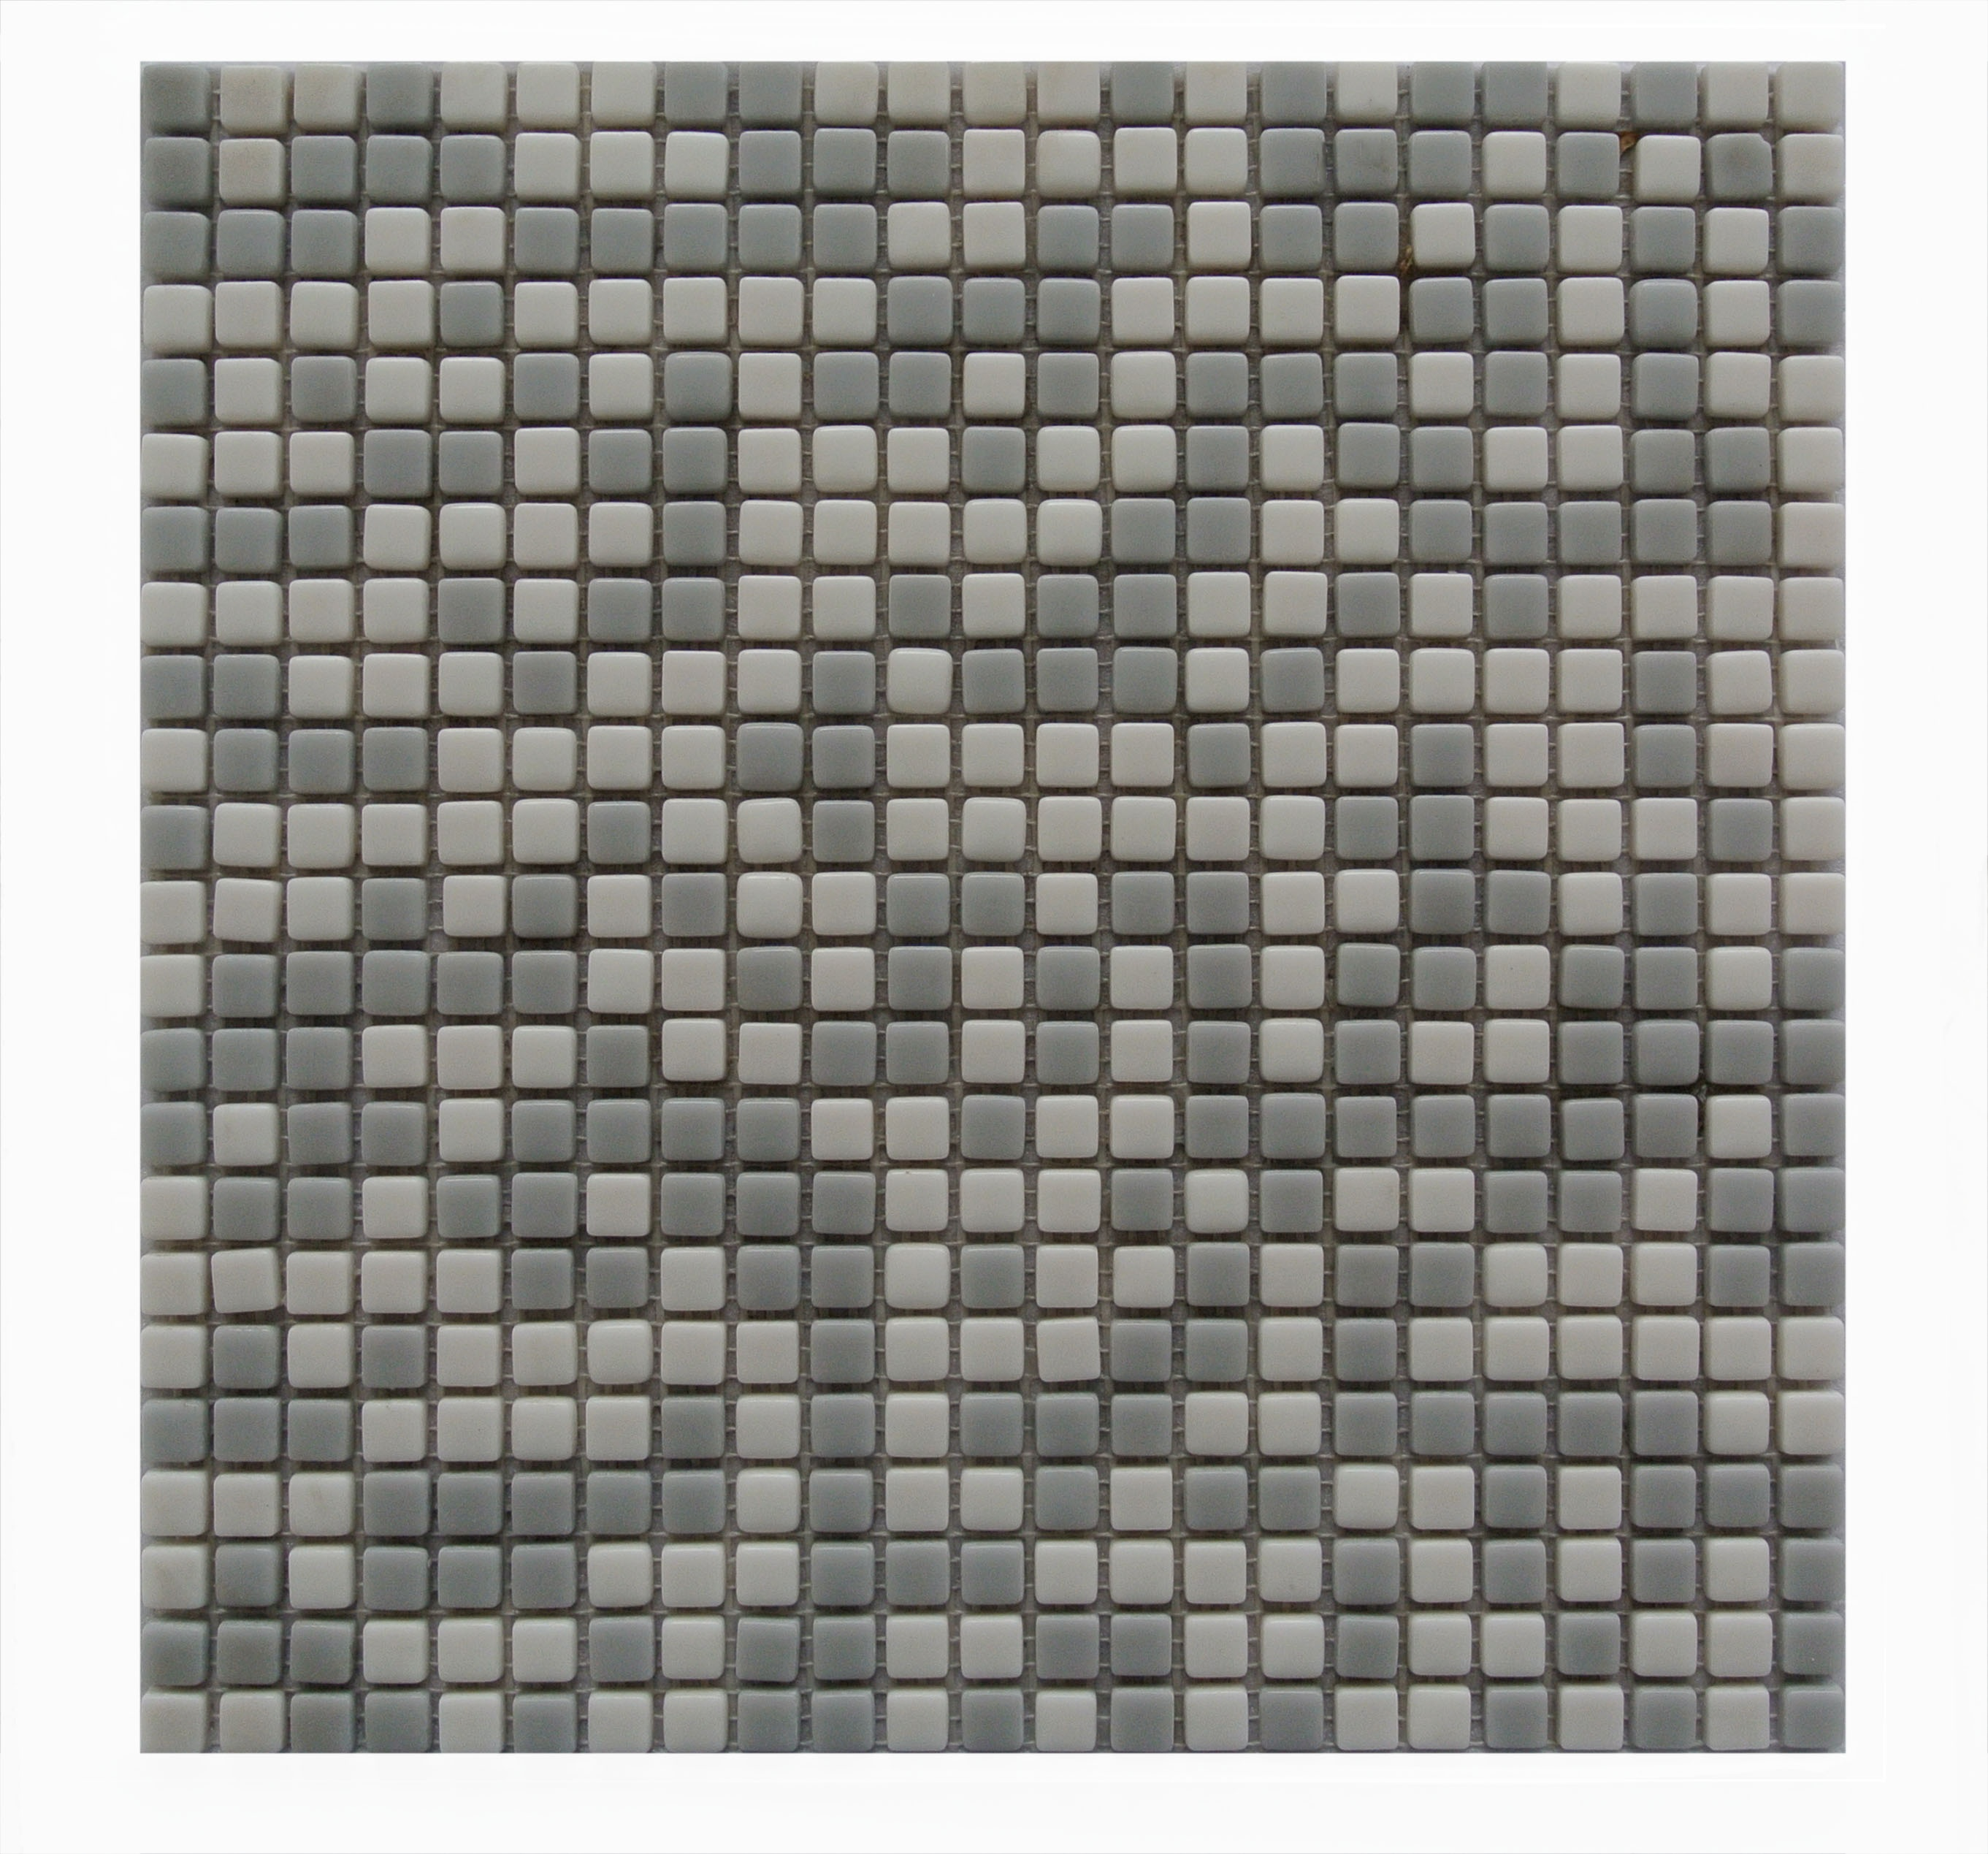 "Full Body 0.5"" x 0.5"" Glossy Gray Glass Square Backsplash Mosaic Wall & Floor Tile"